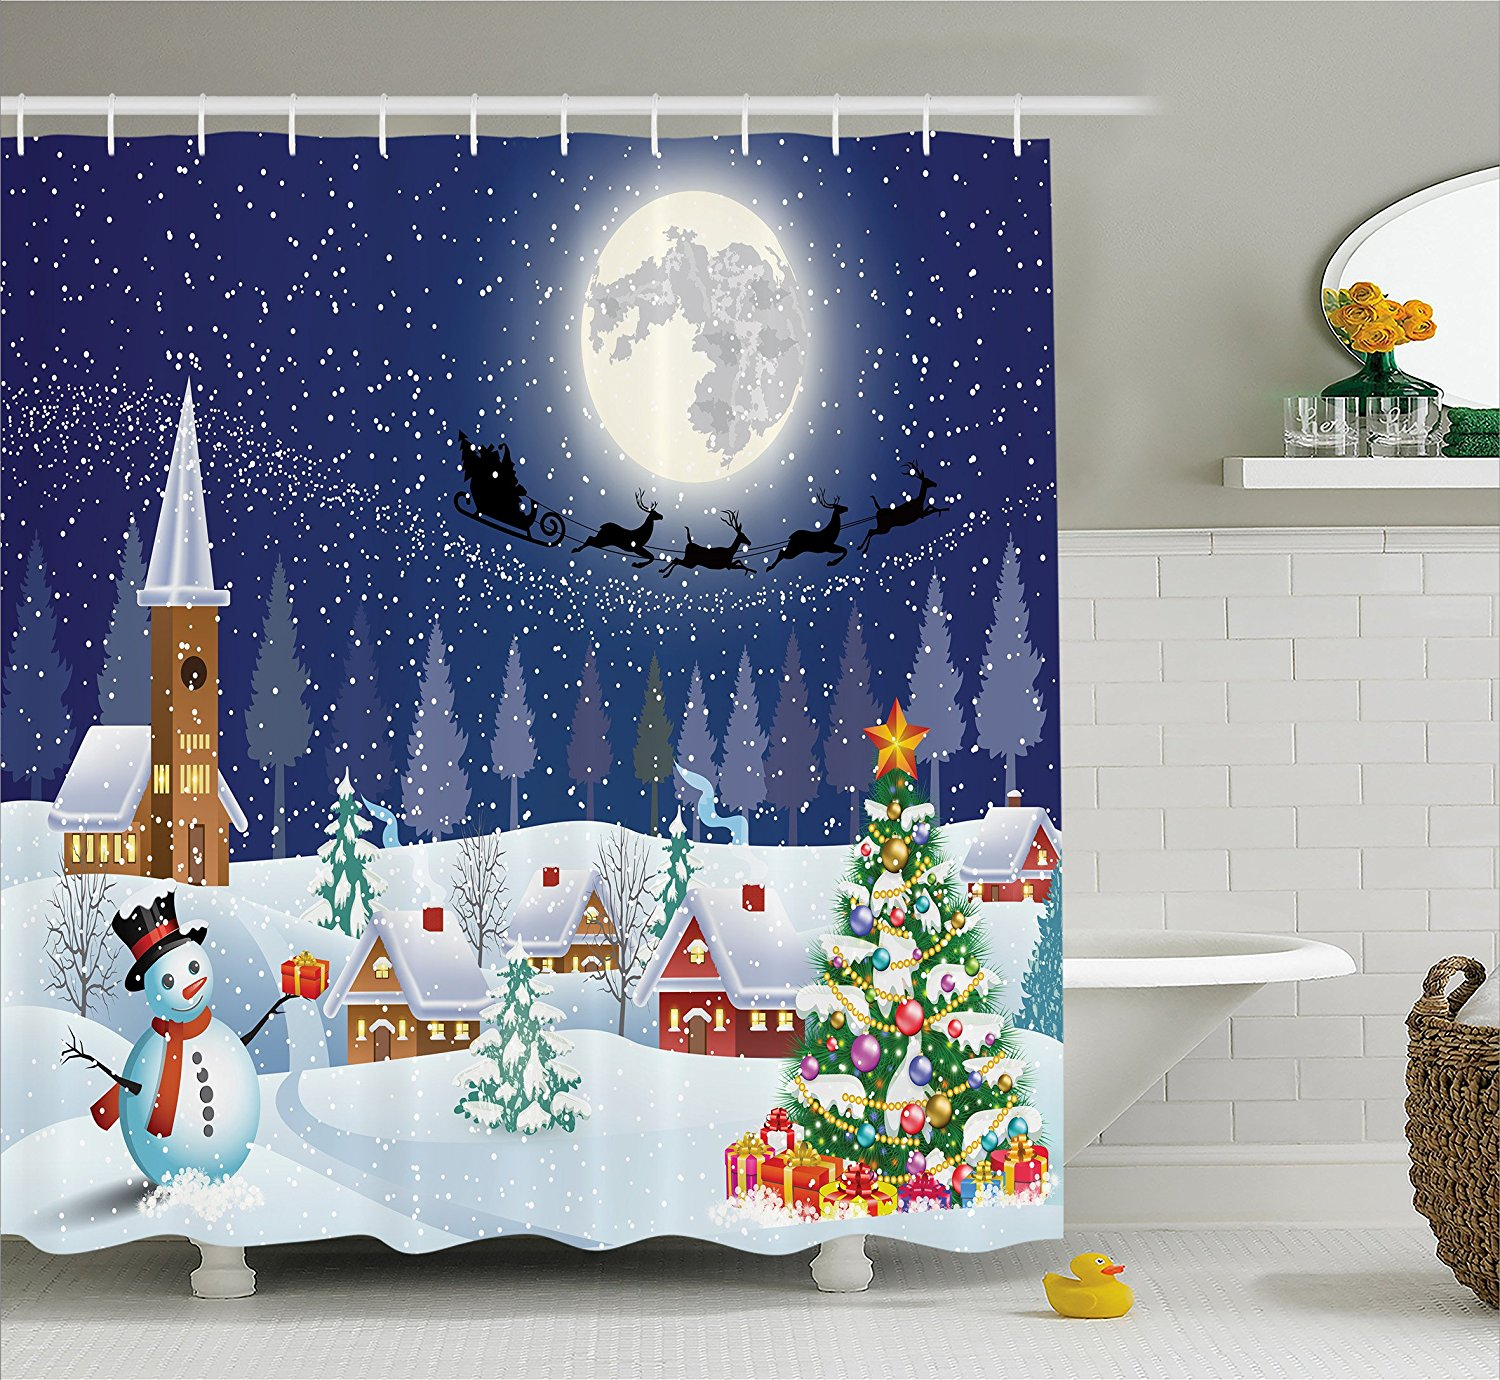 Christmas Bathroom Curtains.Christmas Shower Curtain Snowman Christmas Bathroom Acessories By Santa Reindeer Christmas Eve In Small Town With On Starry Night Winter Scene